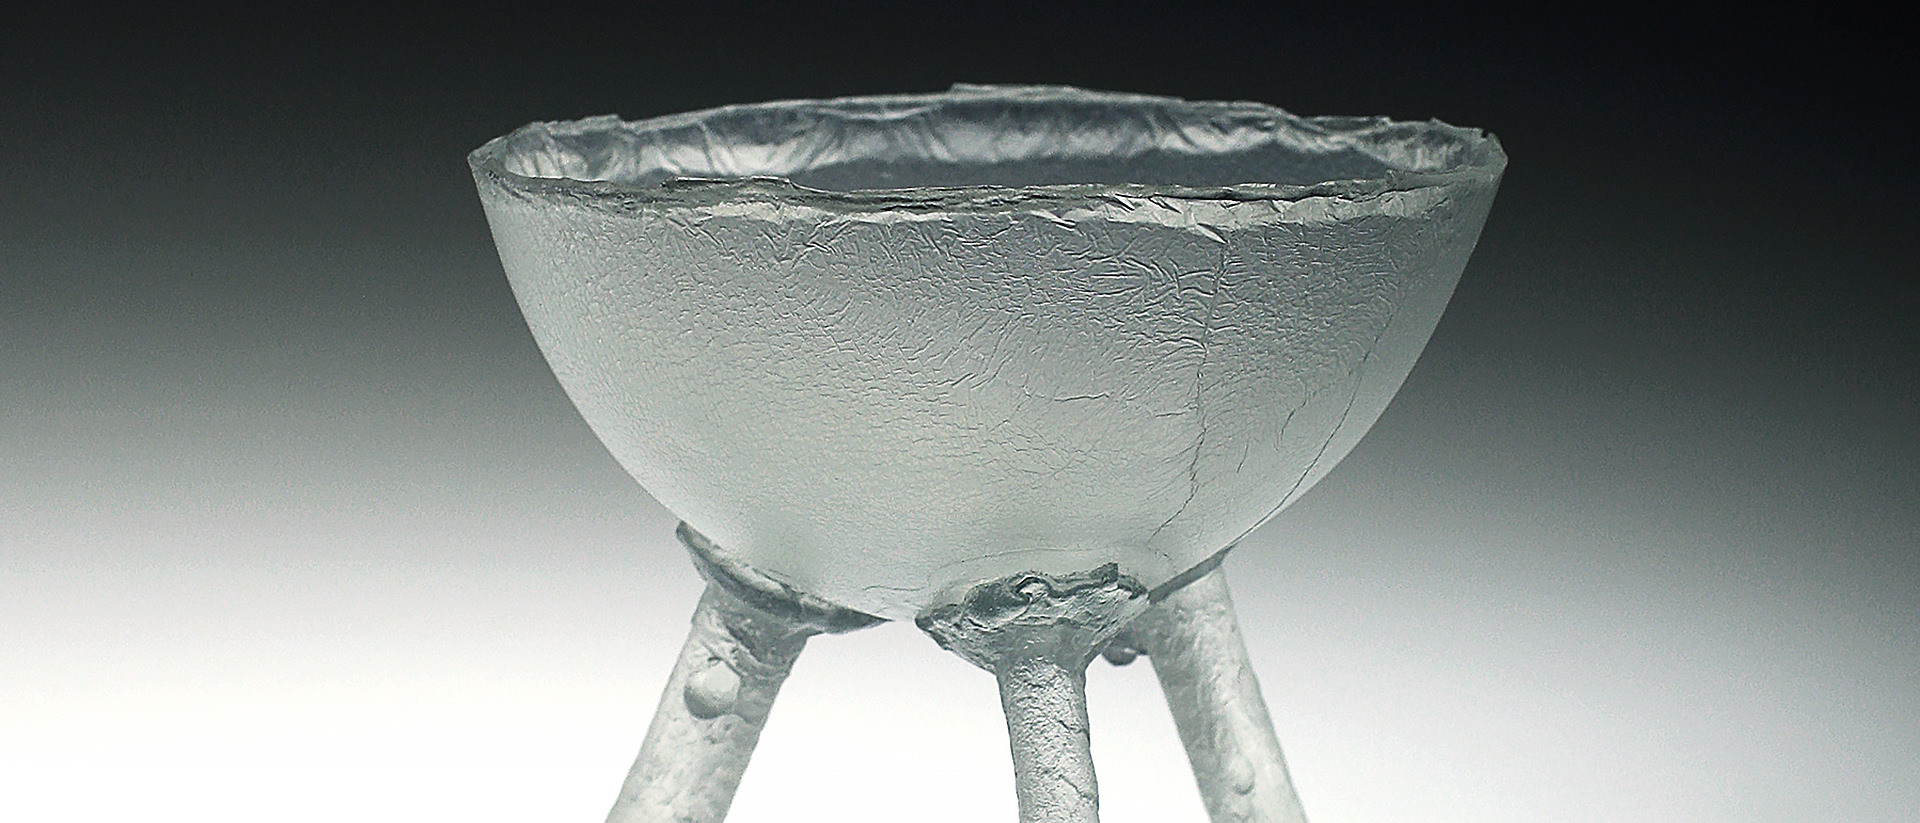 Ione Thorkelsson, Three-footed bowl, 1993, cast glass, 11.5 x 16 cm. diam. Photo courtesy of the artist